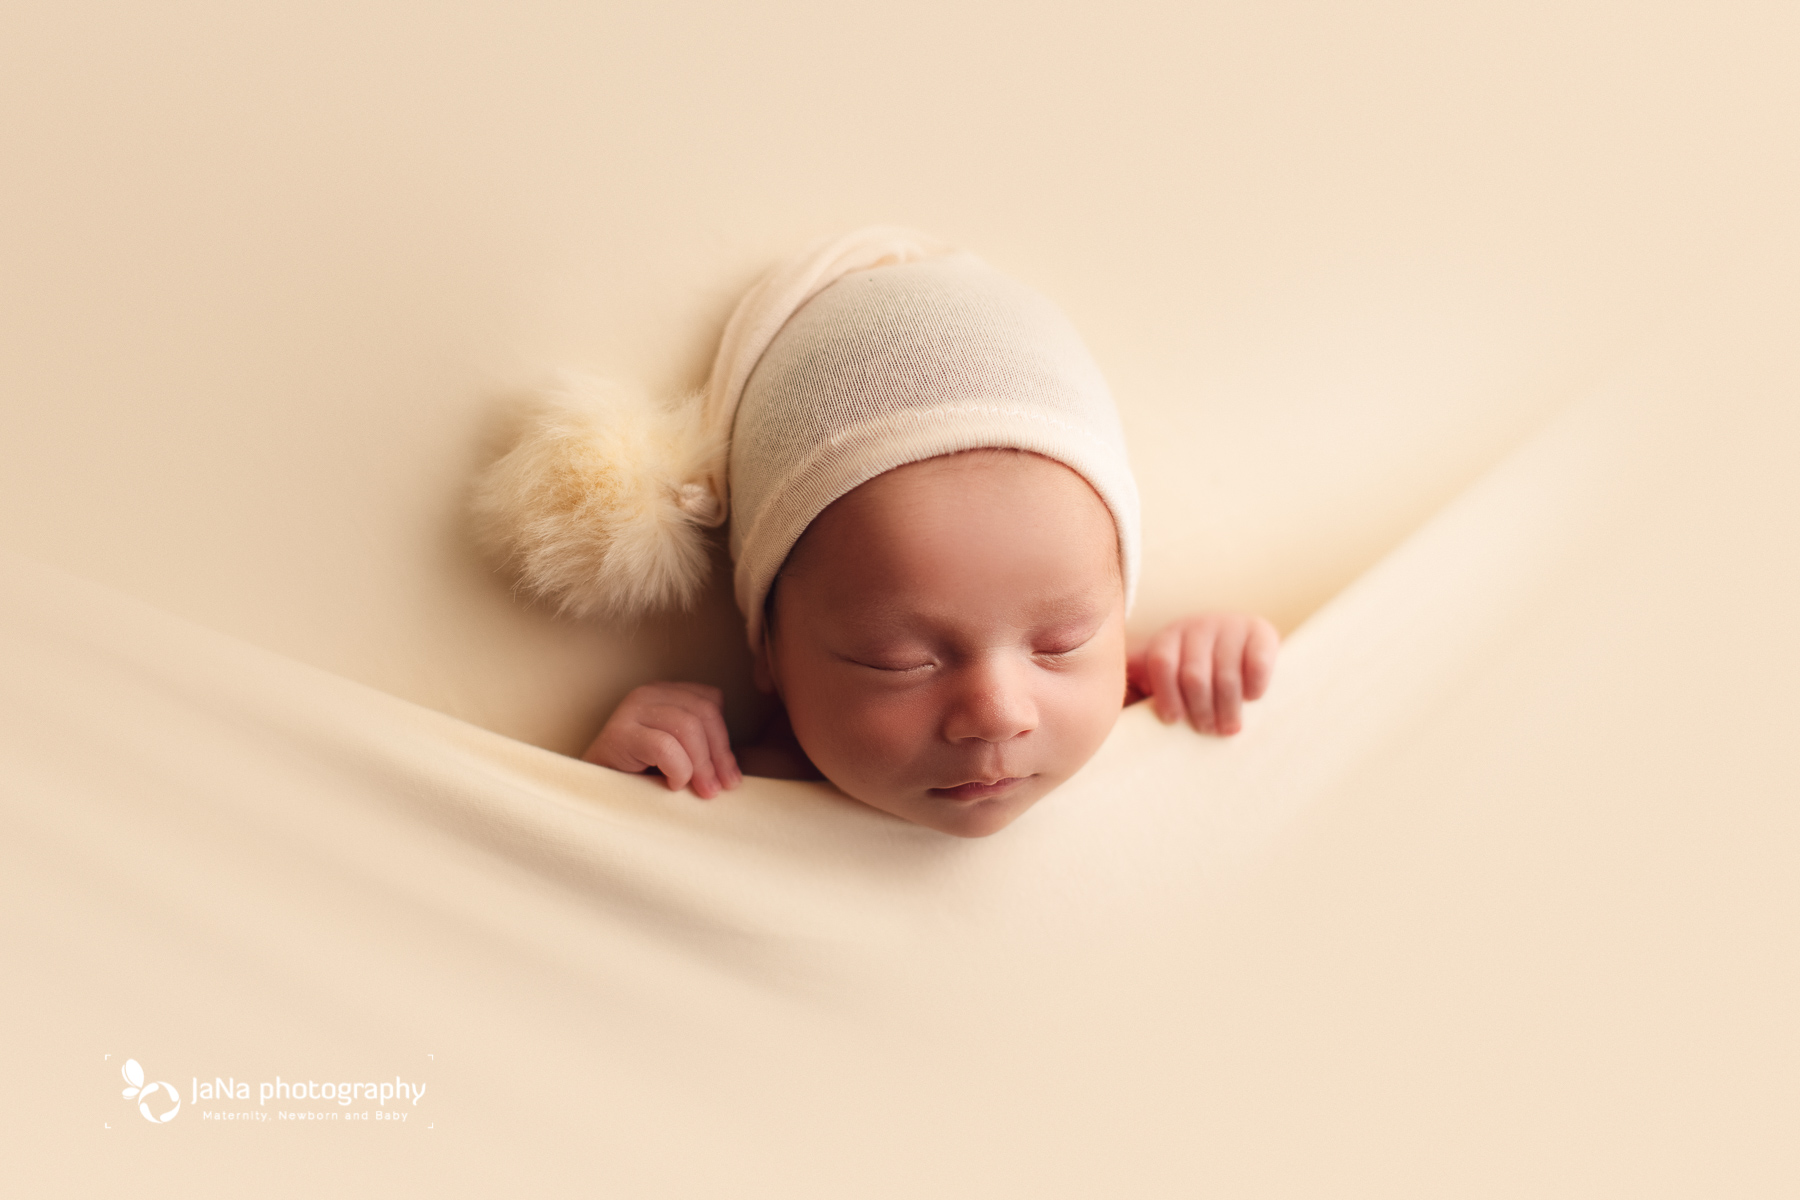 newborn baby boy sleeping on a cream background wearing hat